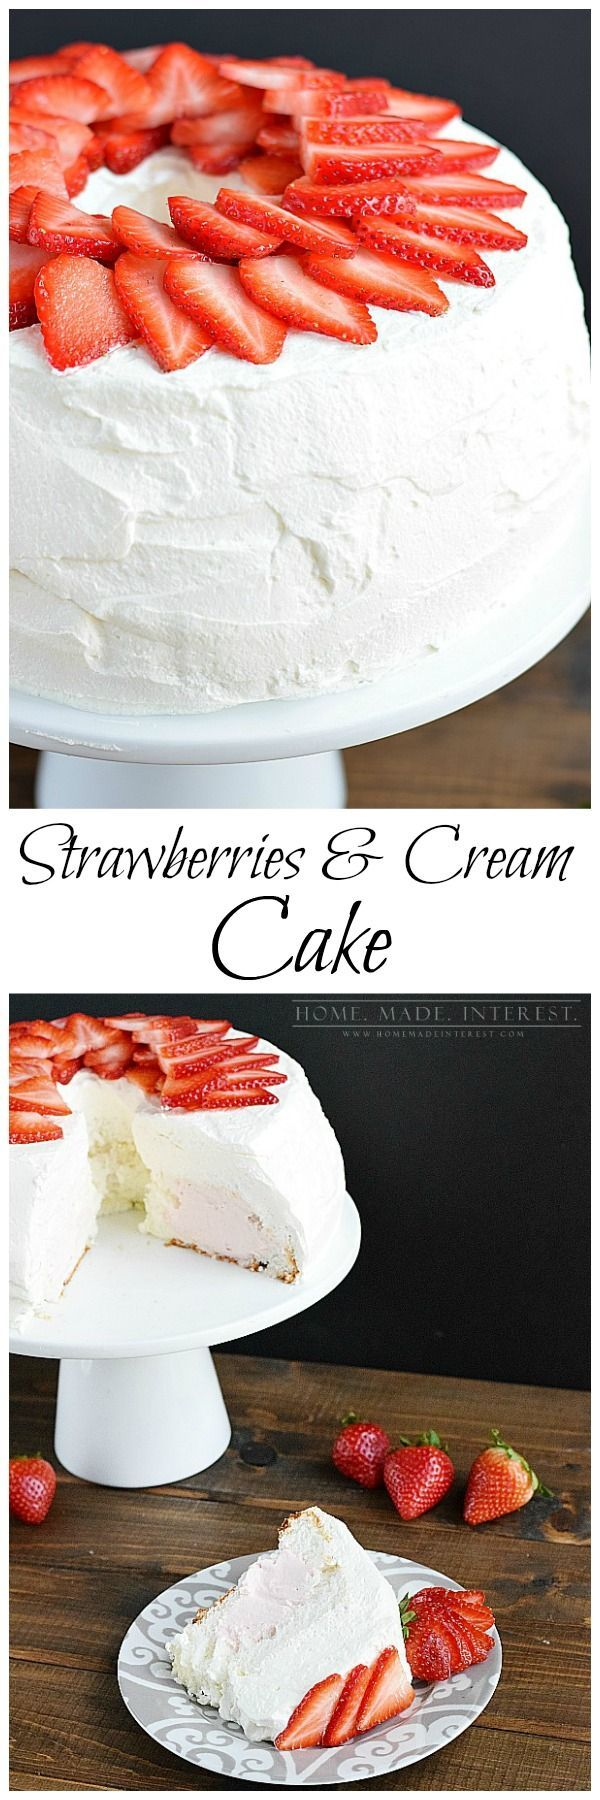 A light and airy angel food cake recipe filled with strawberry whipped cream, frosted with whipped cream, and topped with fresh strawberries.